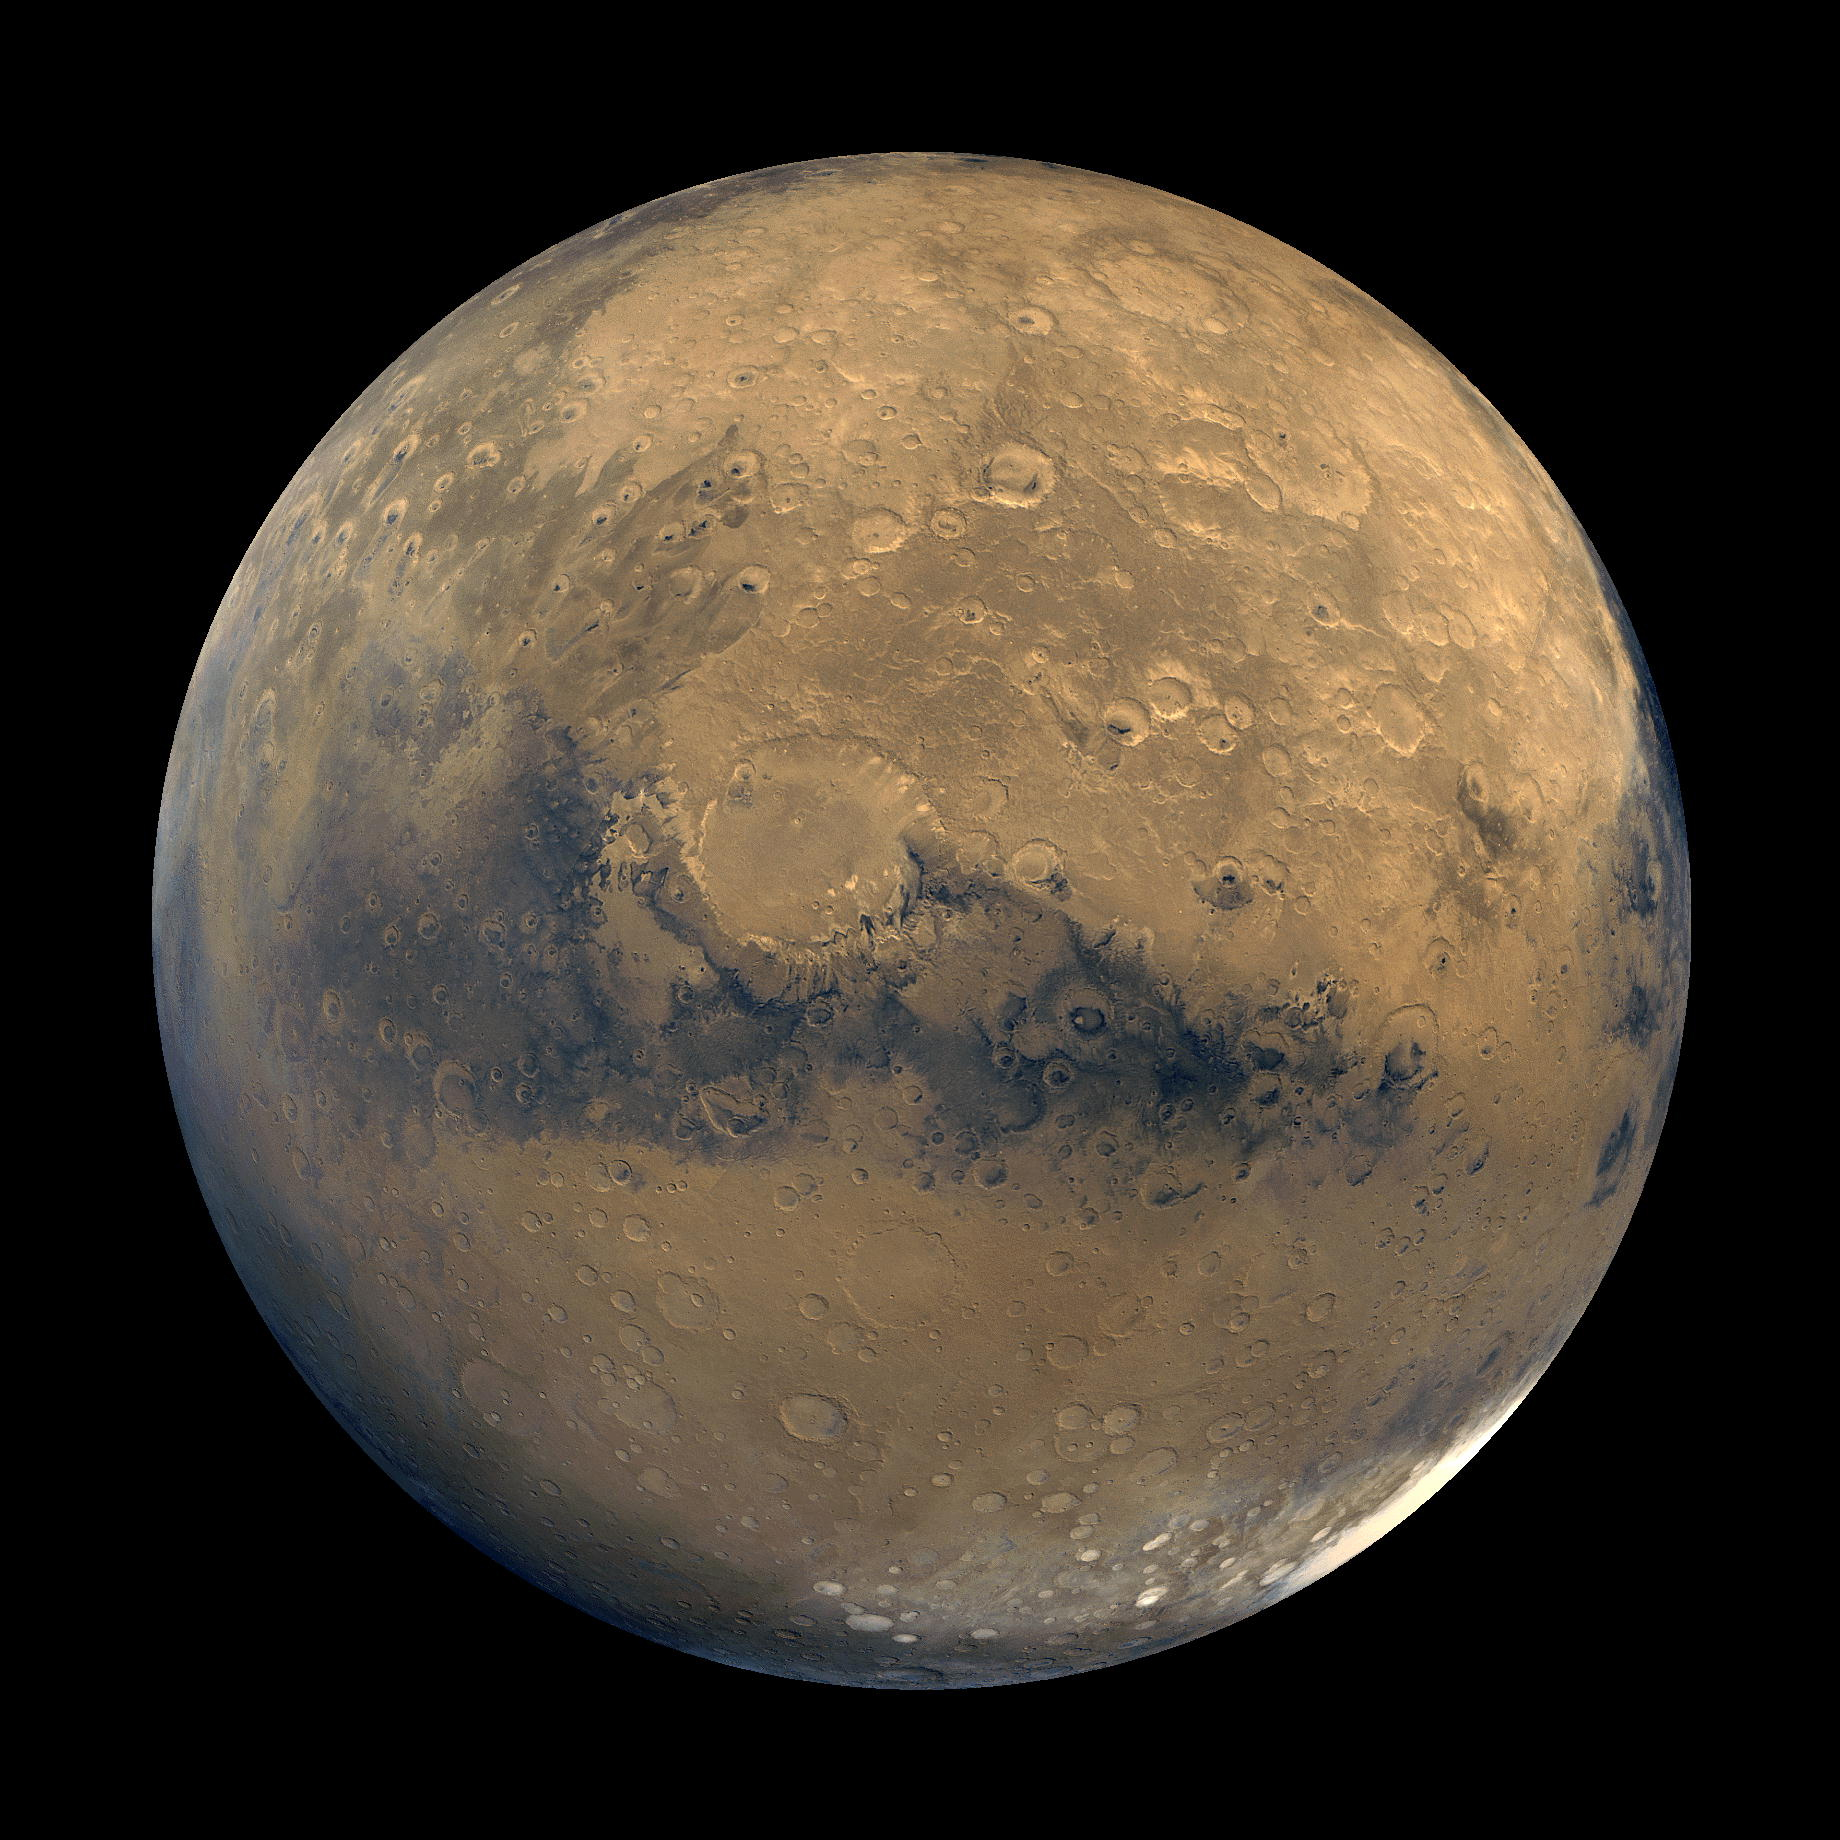 Science | Mars Exploration Program - NASA Mars